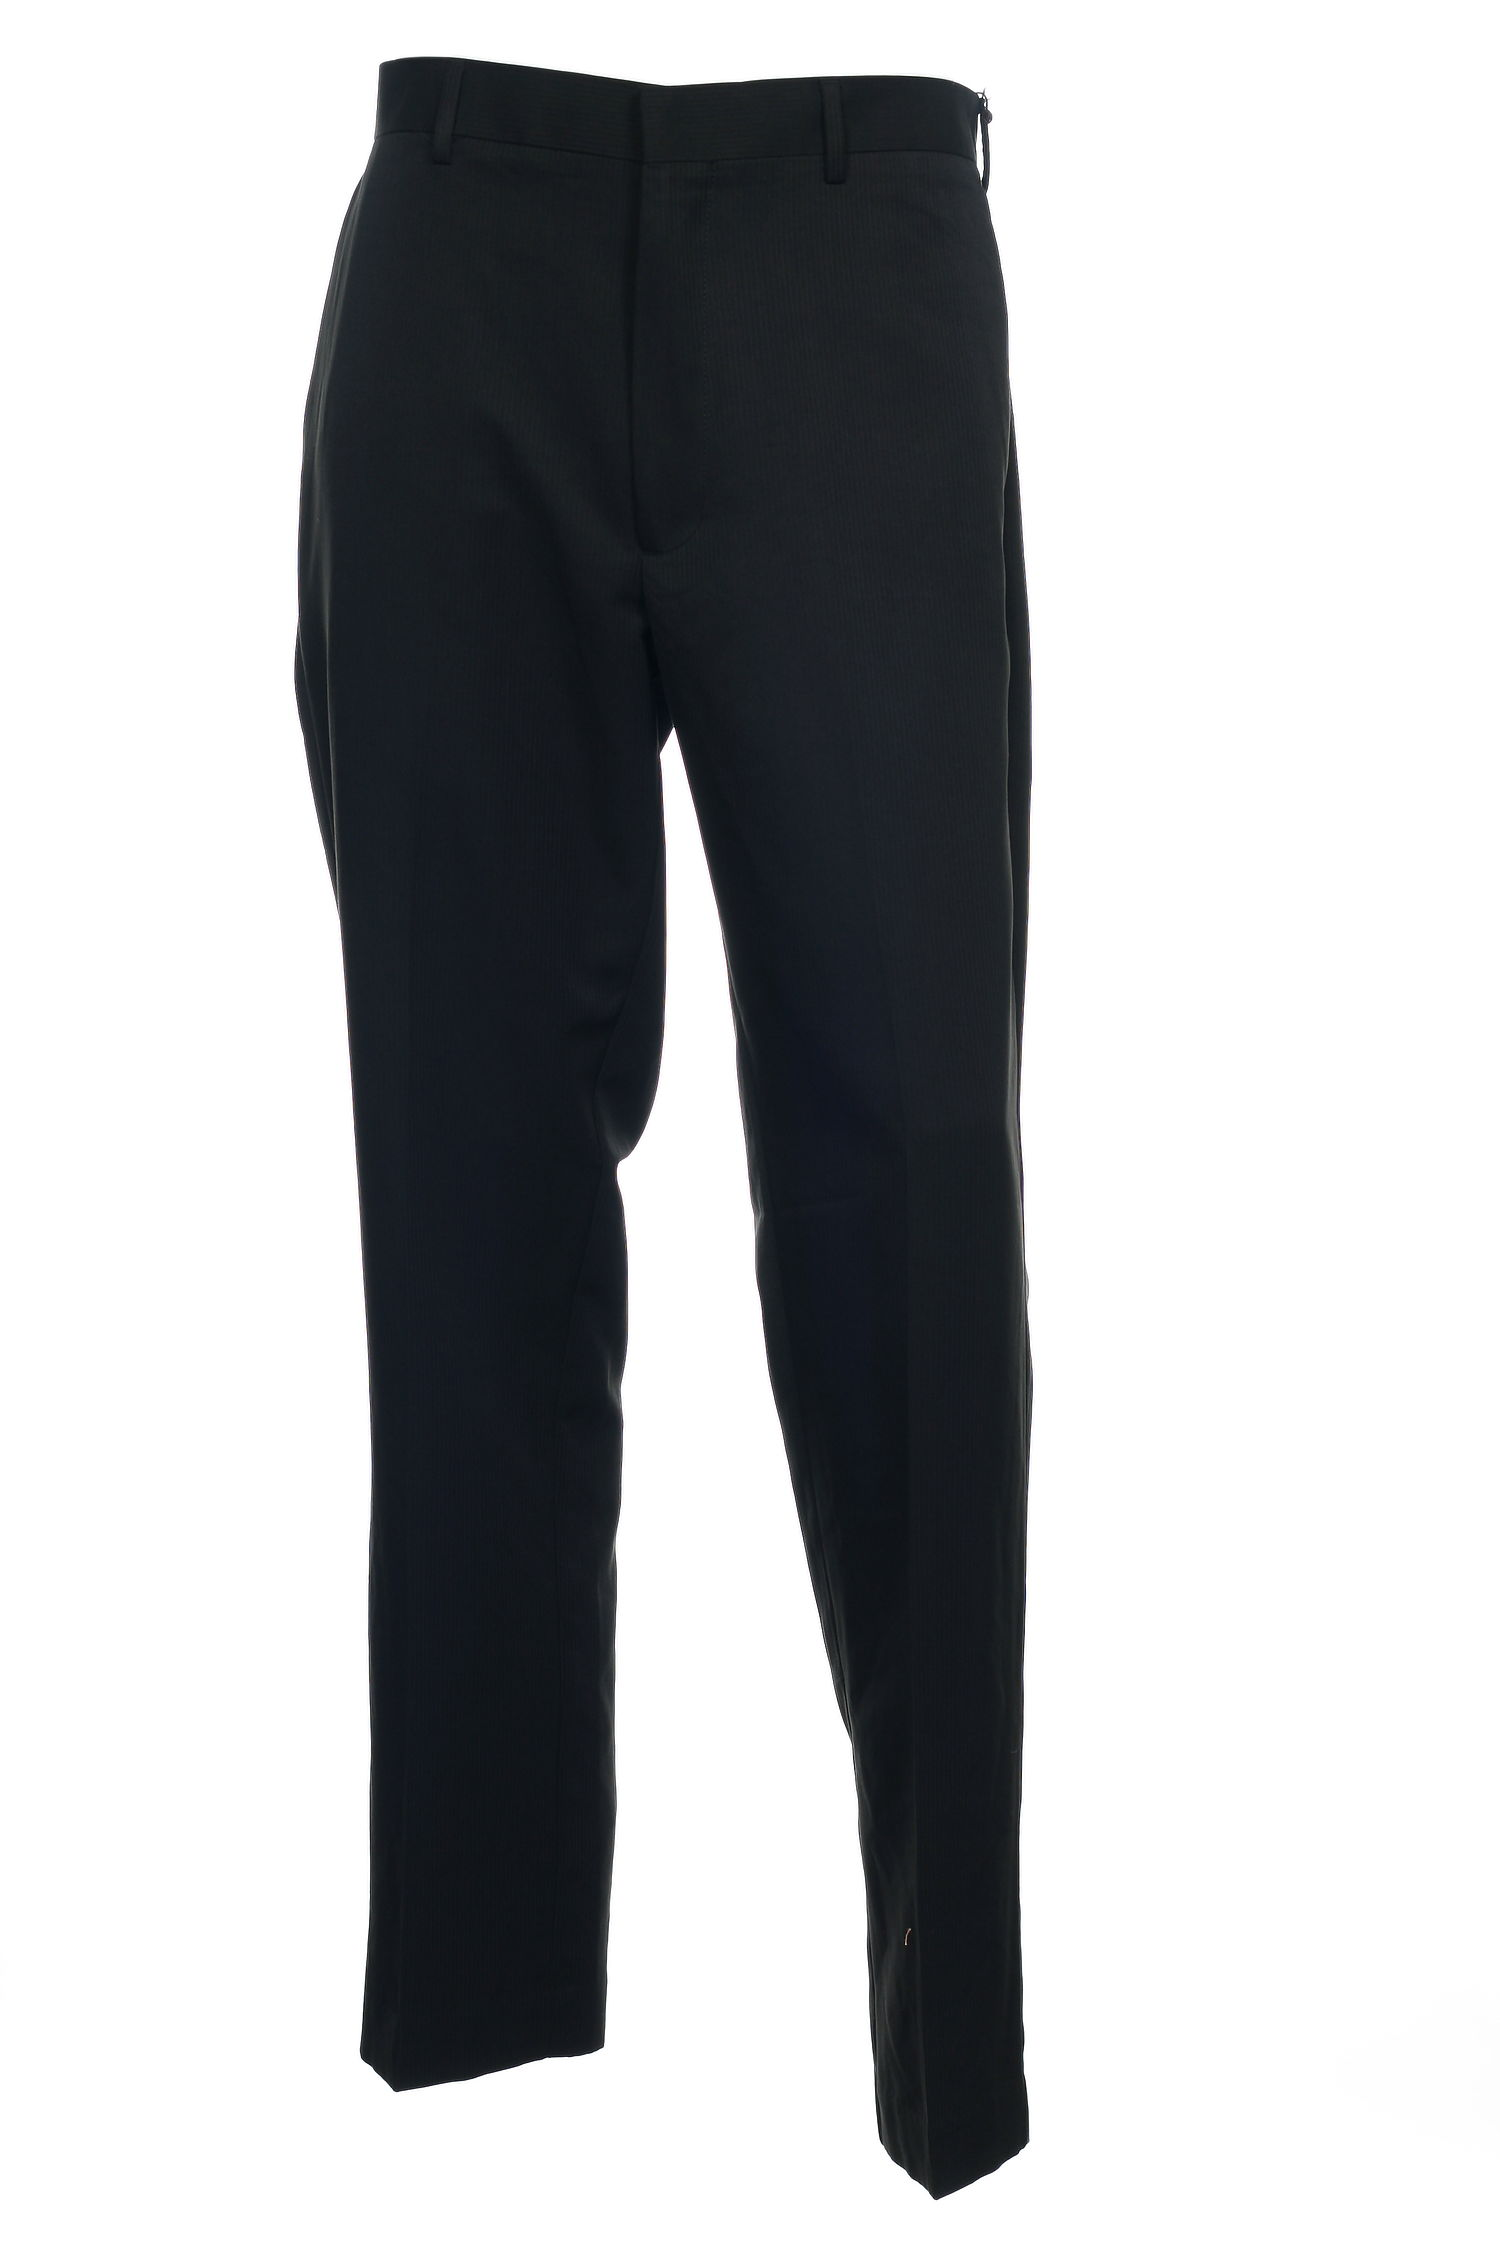 Mens black dress pants 38x28